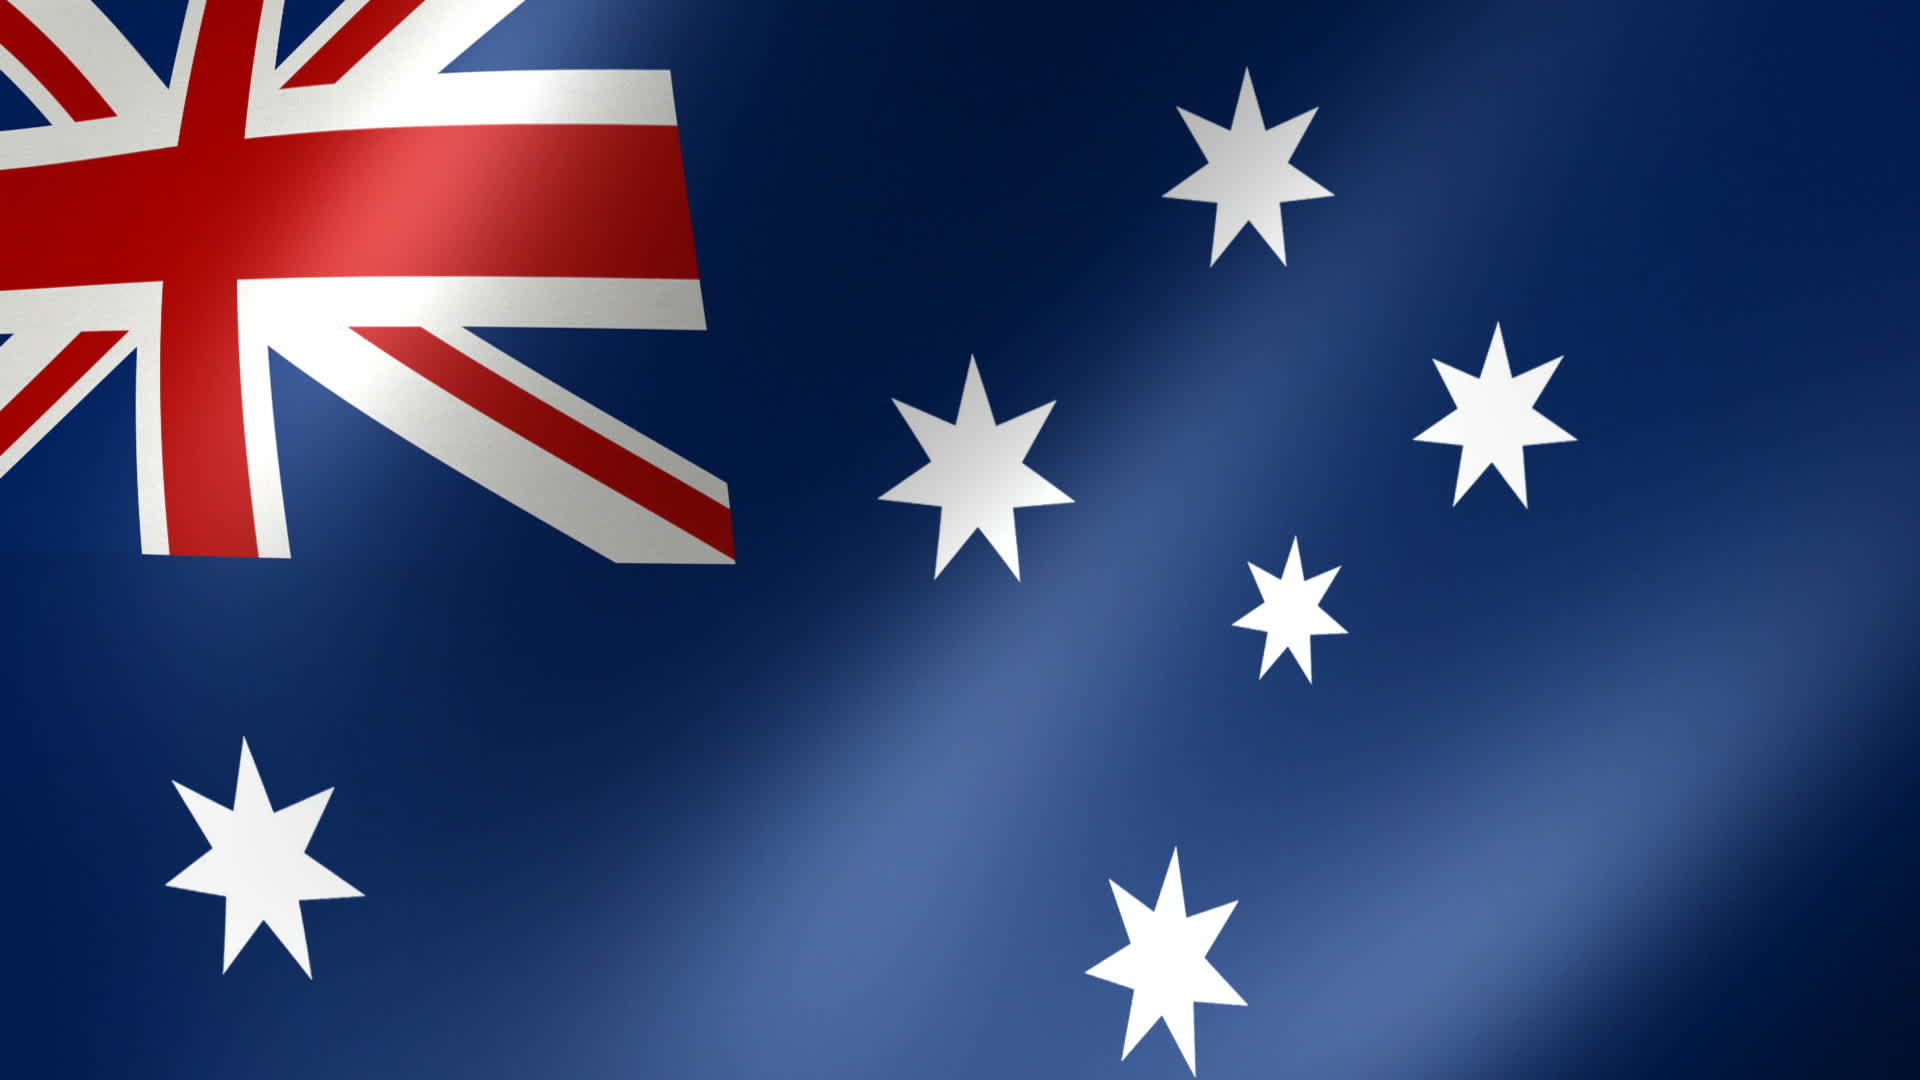 Australia Flag Waving HD Wallpaper Background Images 1920x1080